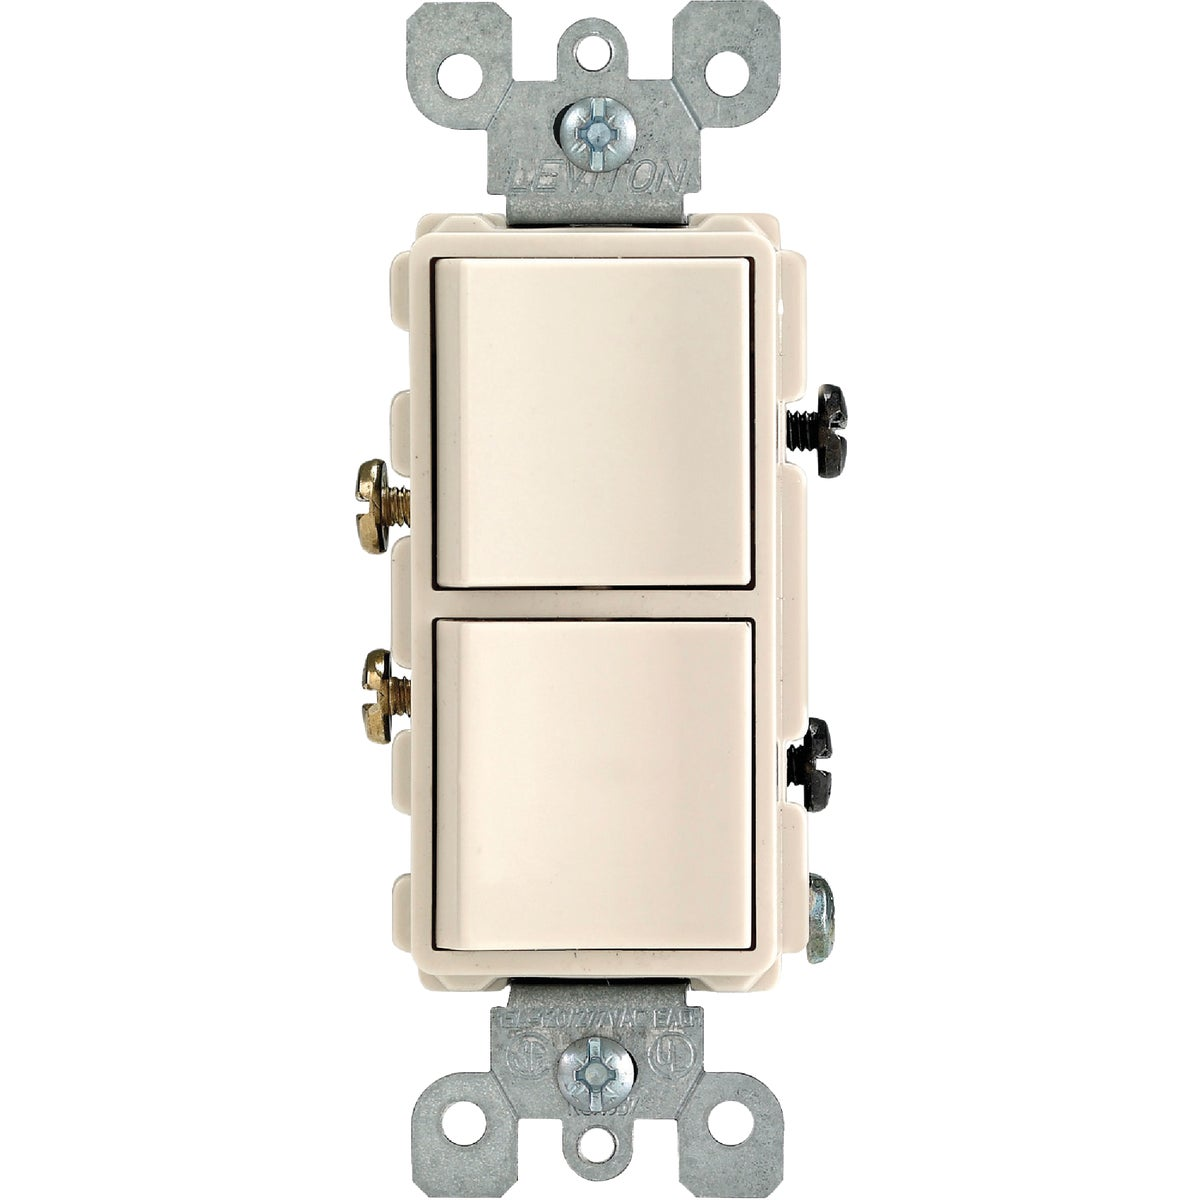 LT ALM DPLX SWITCH - R66-05634-OTS by Leviton Mfg Co